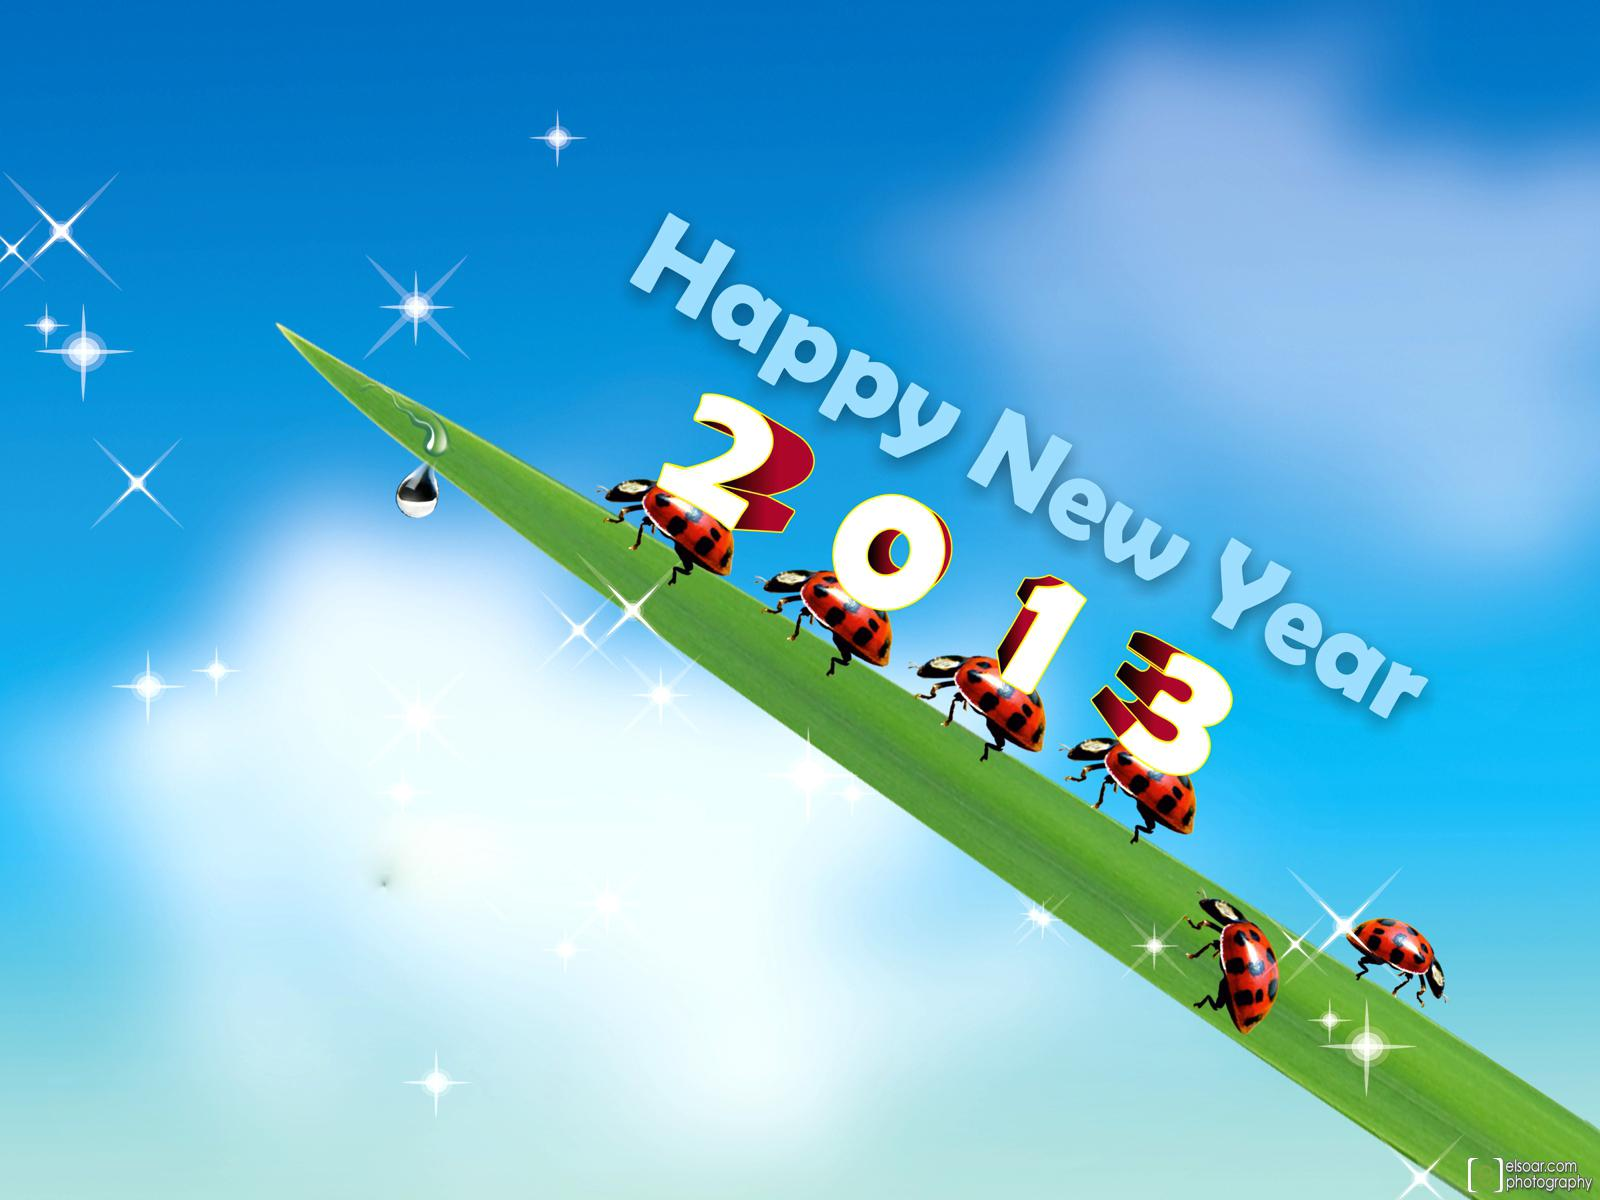 ���� ��� ����� 2012 2013 New Year's Eve, ���� ��� ����� 2012-2013 New Year's Eve,���� ��� ����� 2012